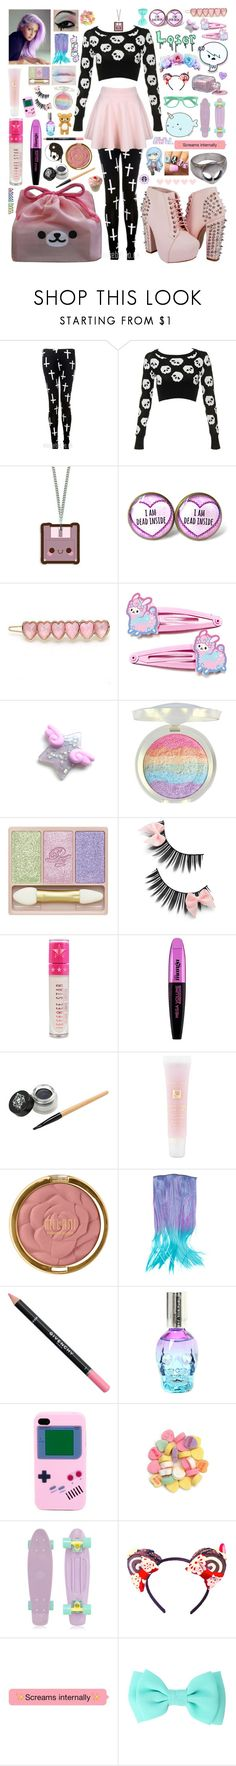 """""""How To Be A Pastel Goth 2"""" by aspiretoinspire22 ❤ liked on Polyvore featuring Nico, Paul & Joe, Jeffree Star, L'Oréal Paris, Hot Topic, Lancôme, Milani, Givenchy, Retrò and Amie"""